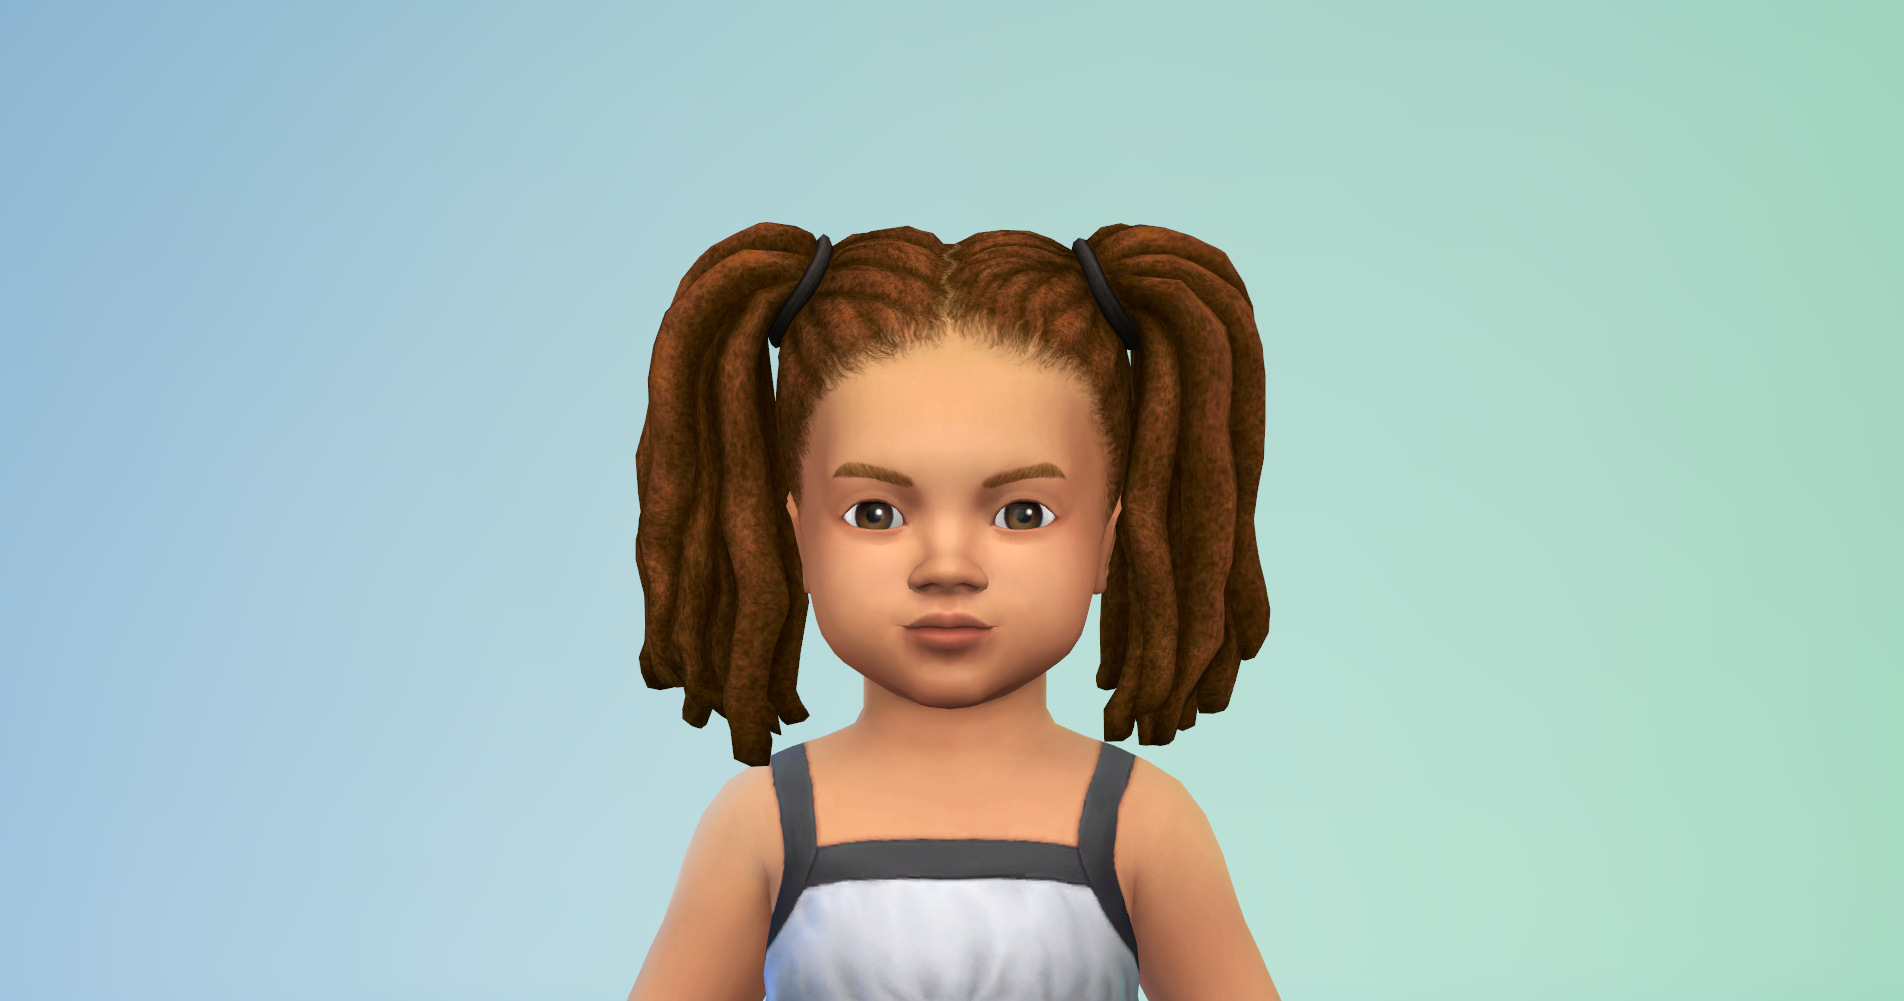 The Sims 4: Latest Patch Adds New Hairstyles for Children ...